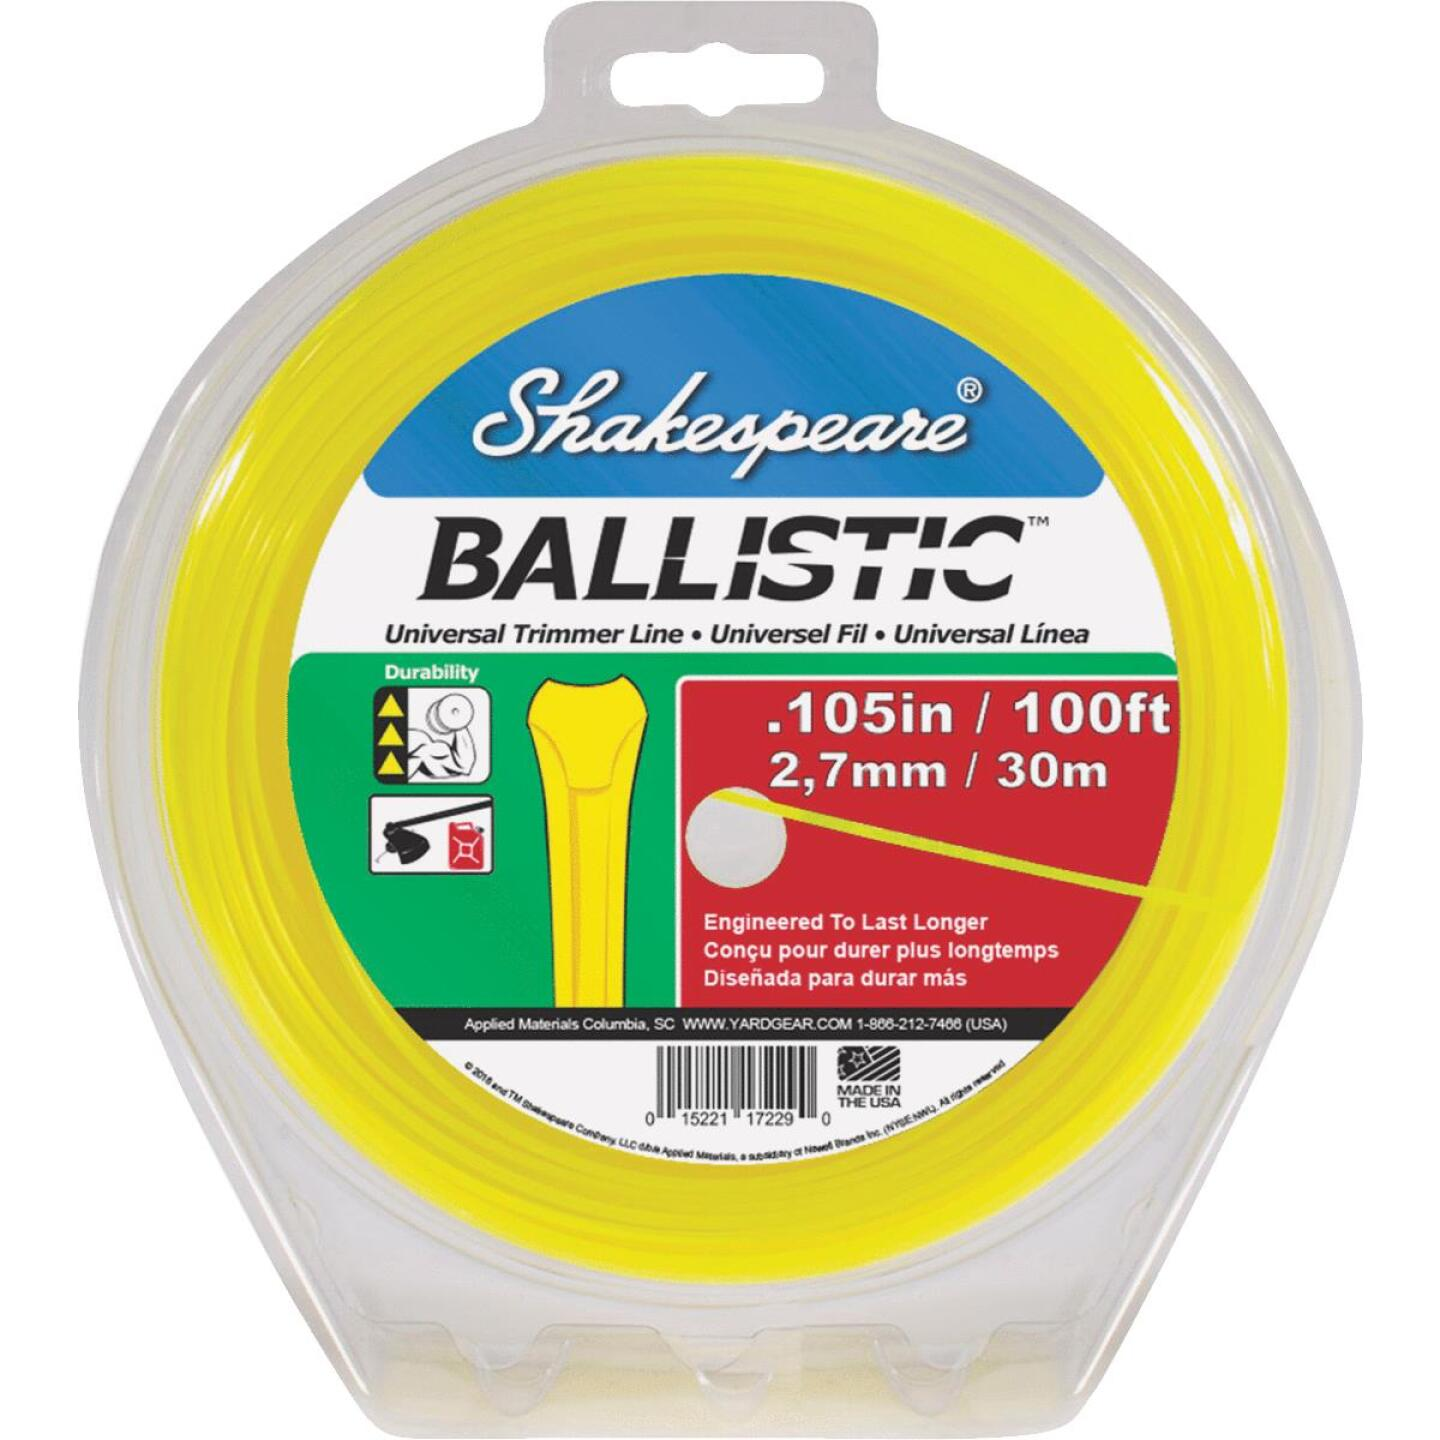 Shakespeare Ballistic 0.105 In. x 100 Ft. Universal Trimmer Line Image 1